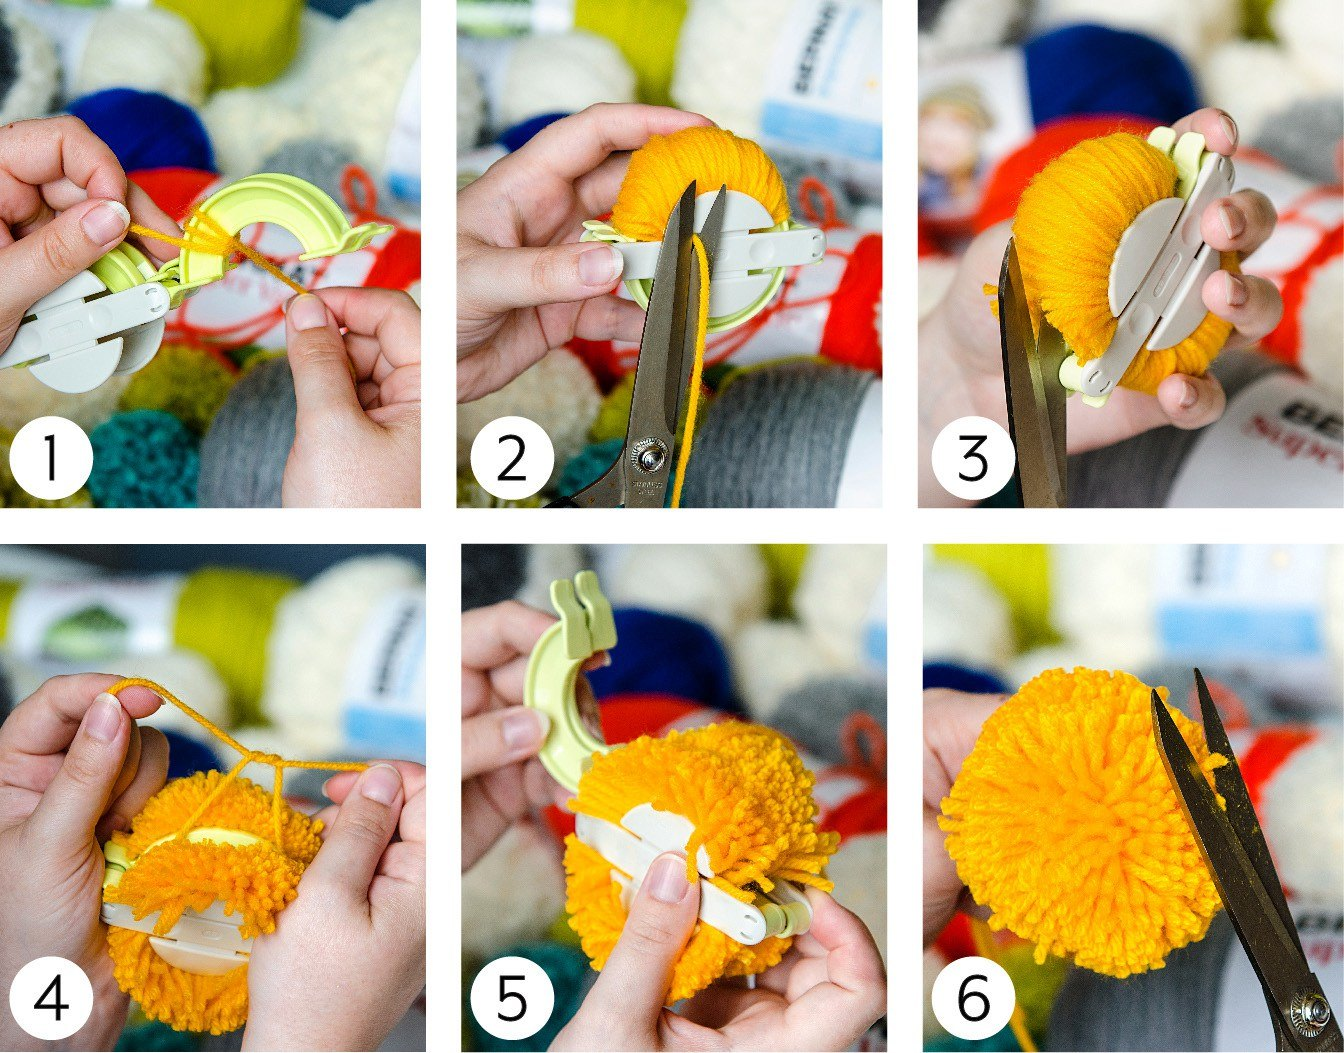 Making a Pompom Steps 1 - 6 Images